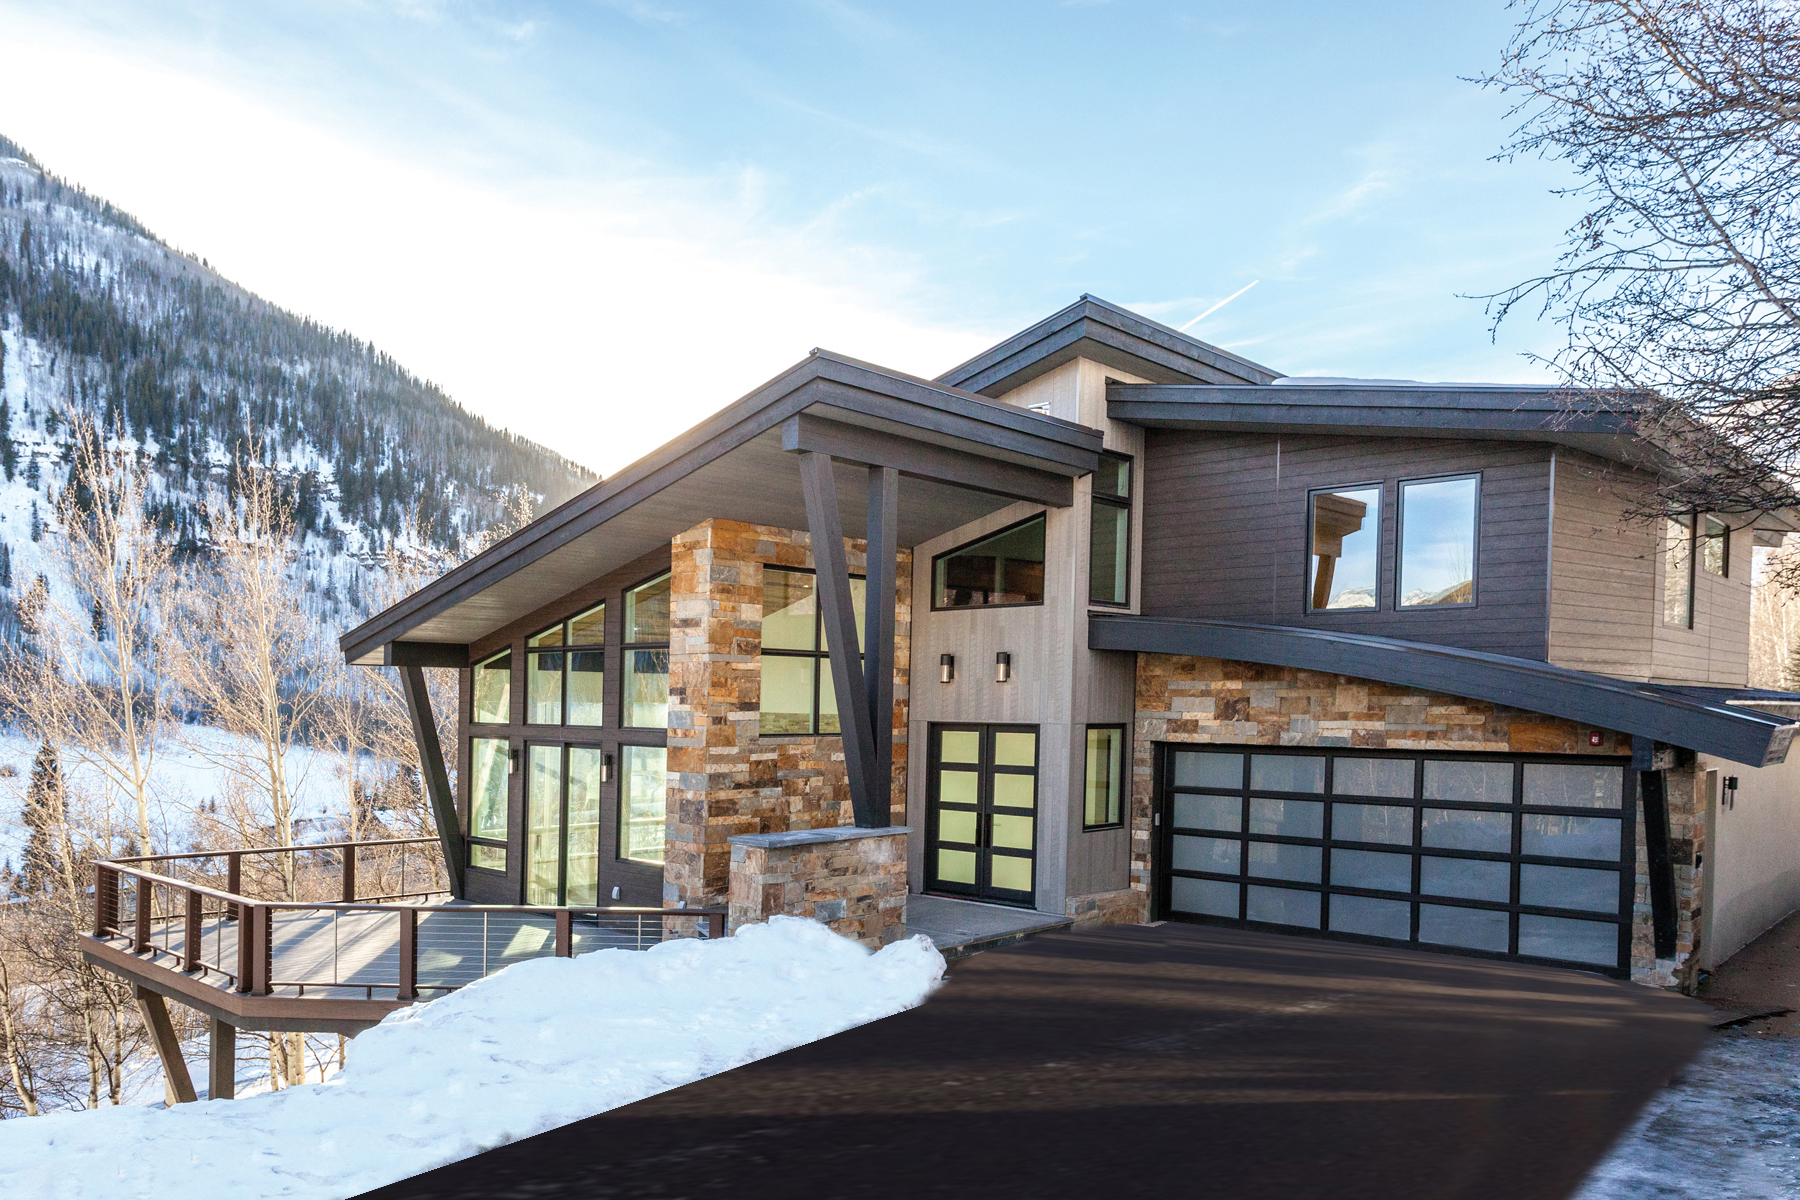 Dúplex por un Venta en New Construction in Vail 3235 Katsos Ranch Rd Vail, Colorado, 81657 Estados Unidos